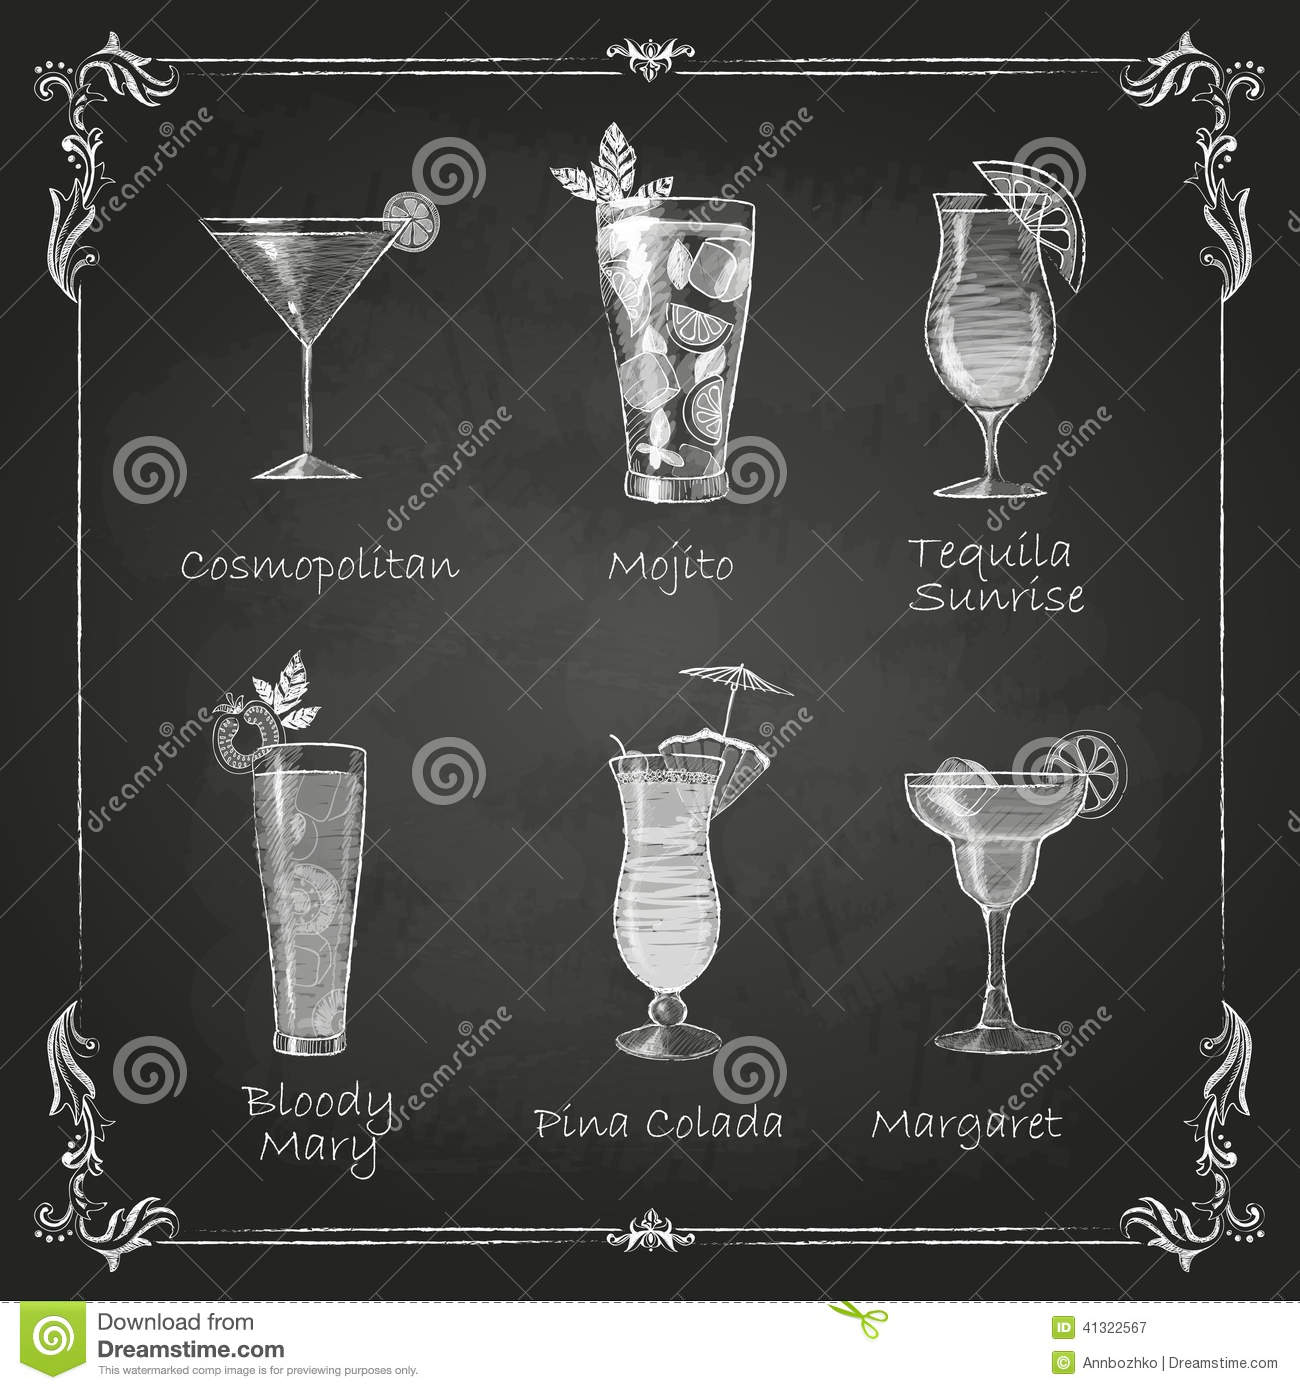 Desenhos de giz menu do cocktail